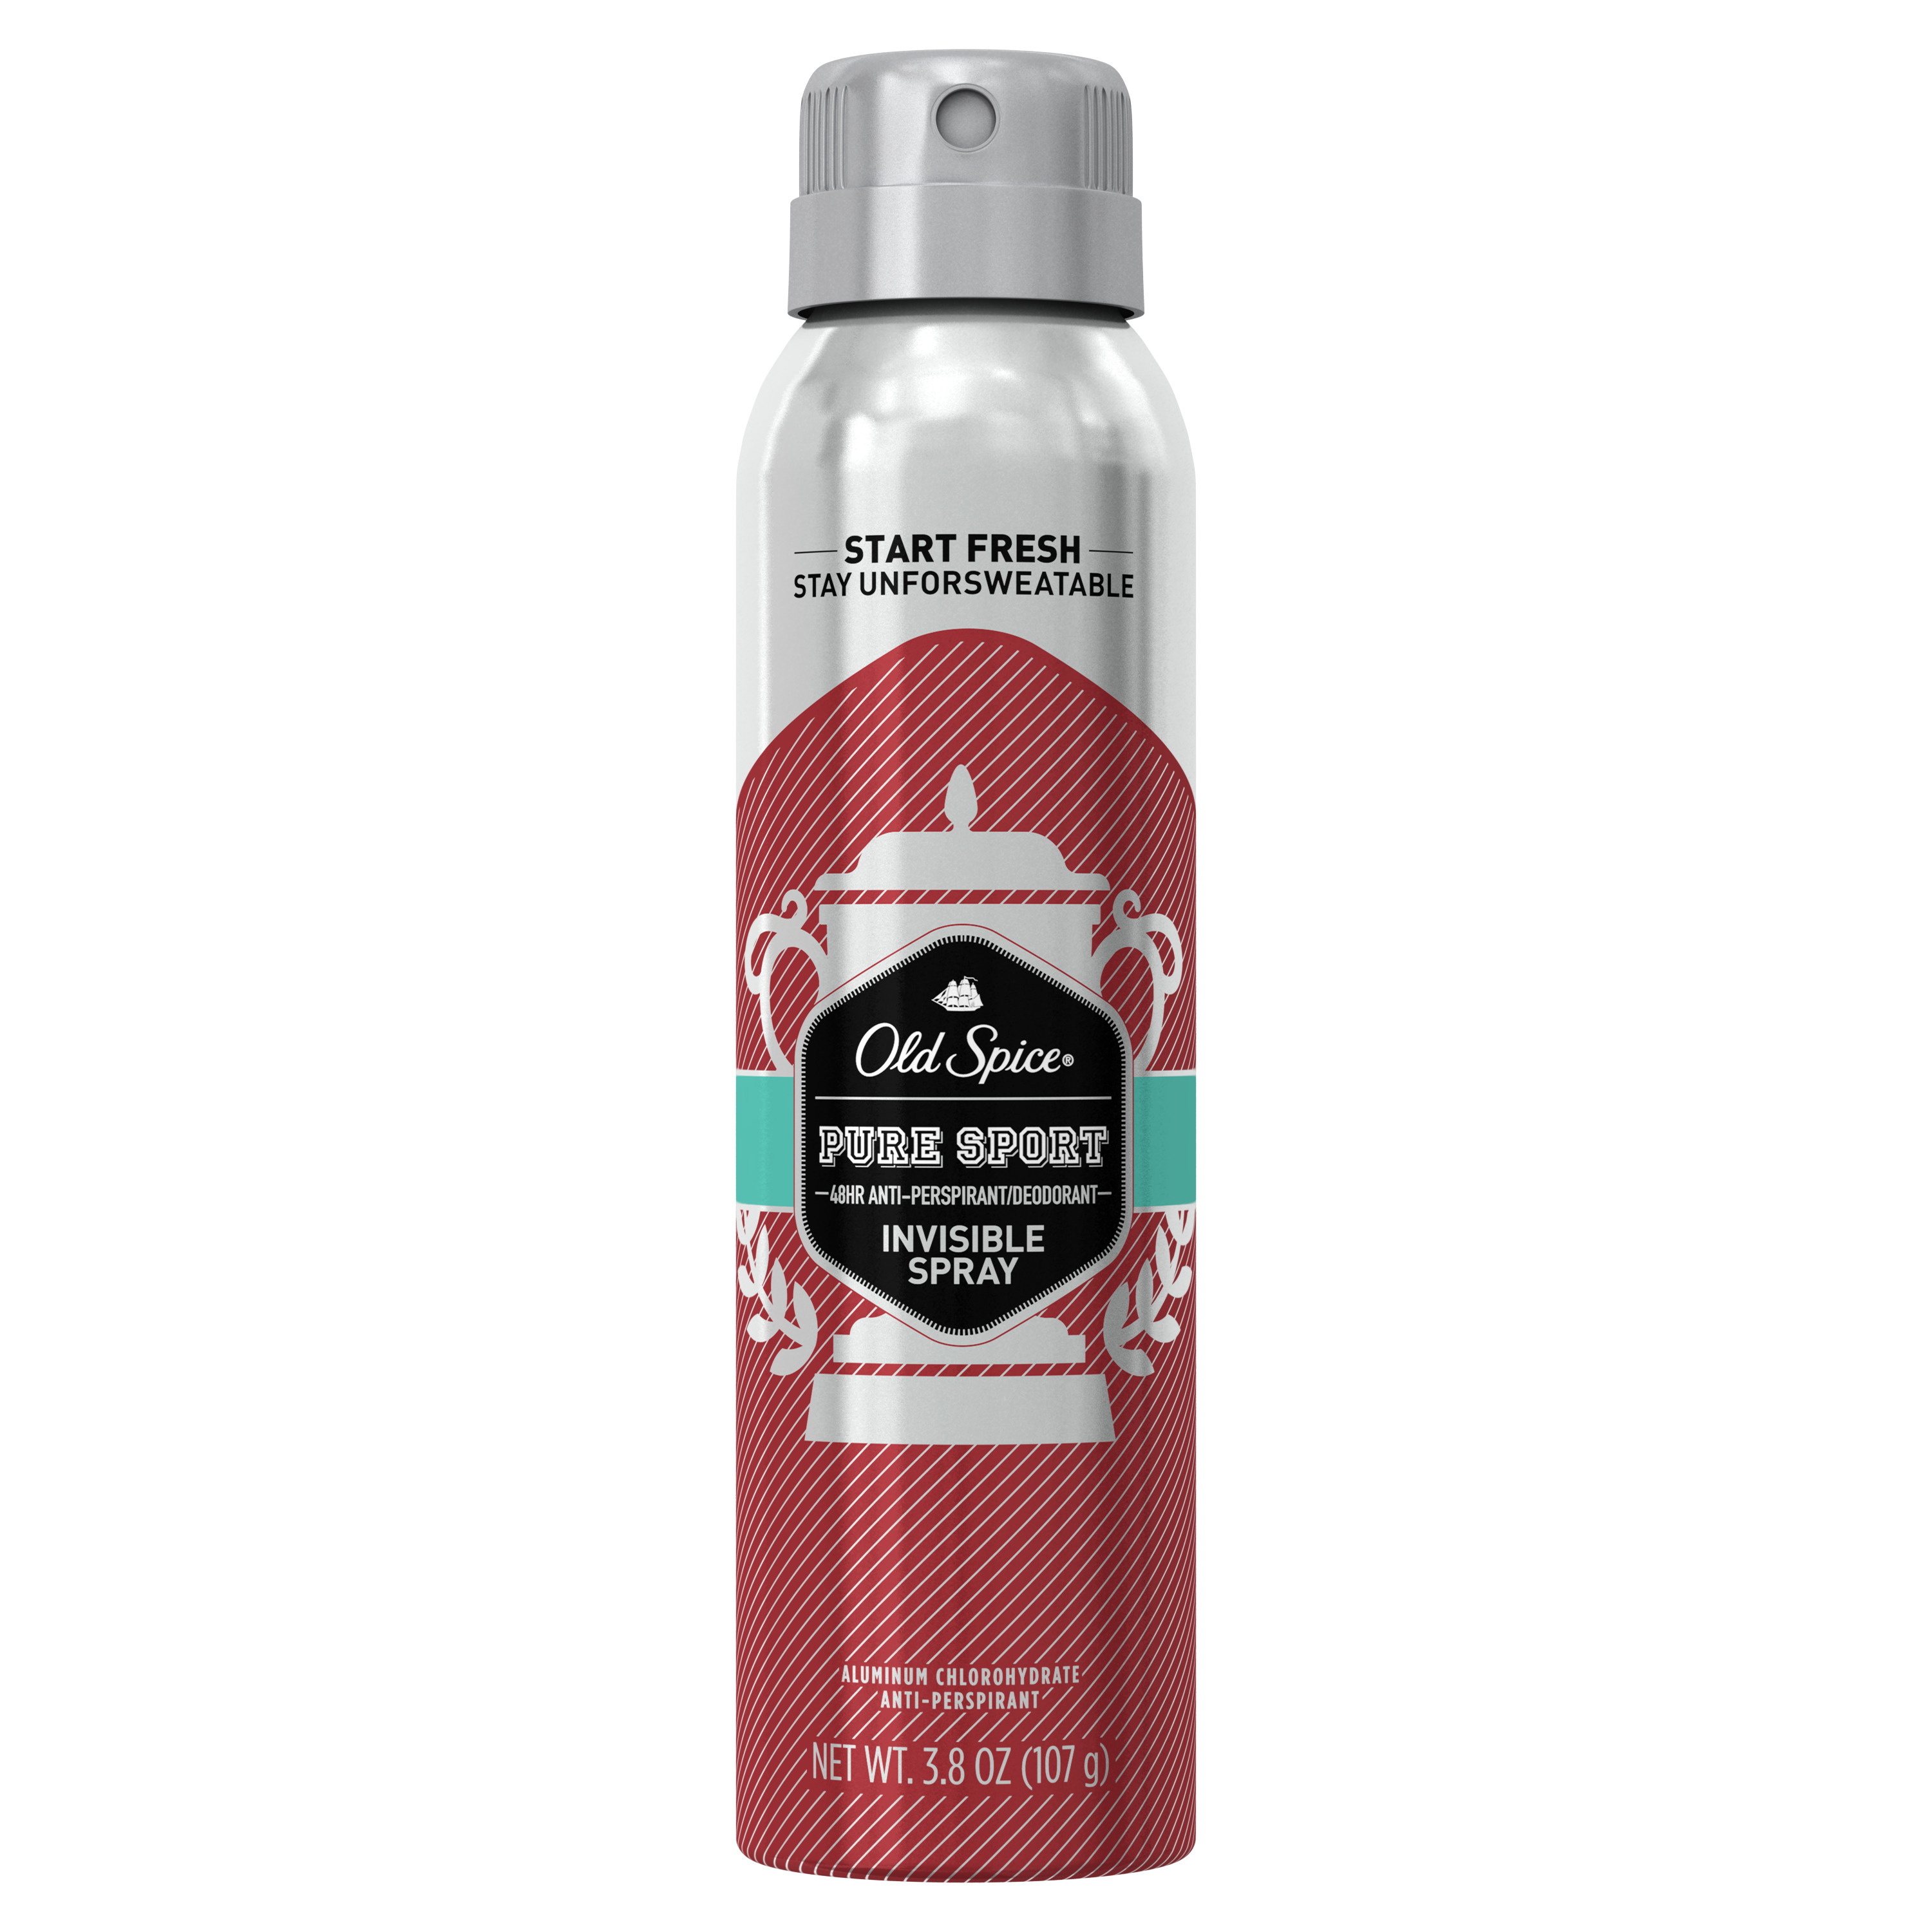 Old Spice Invisible Spray Antiperspirant and Deodorant for men, Pure Sport, 3.8 oz